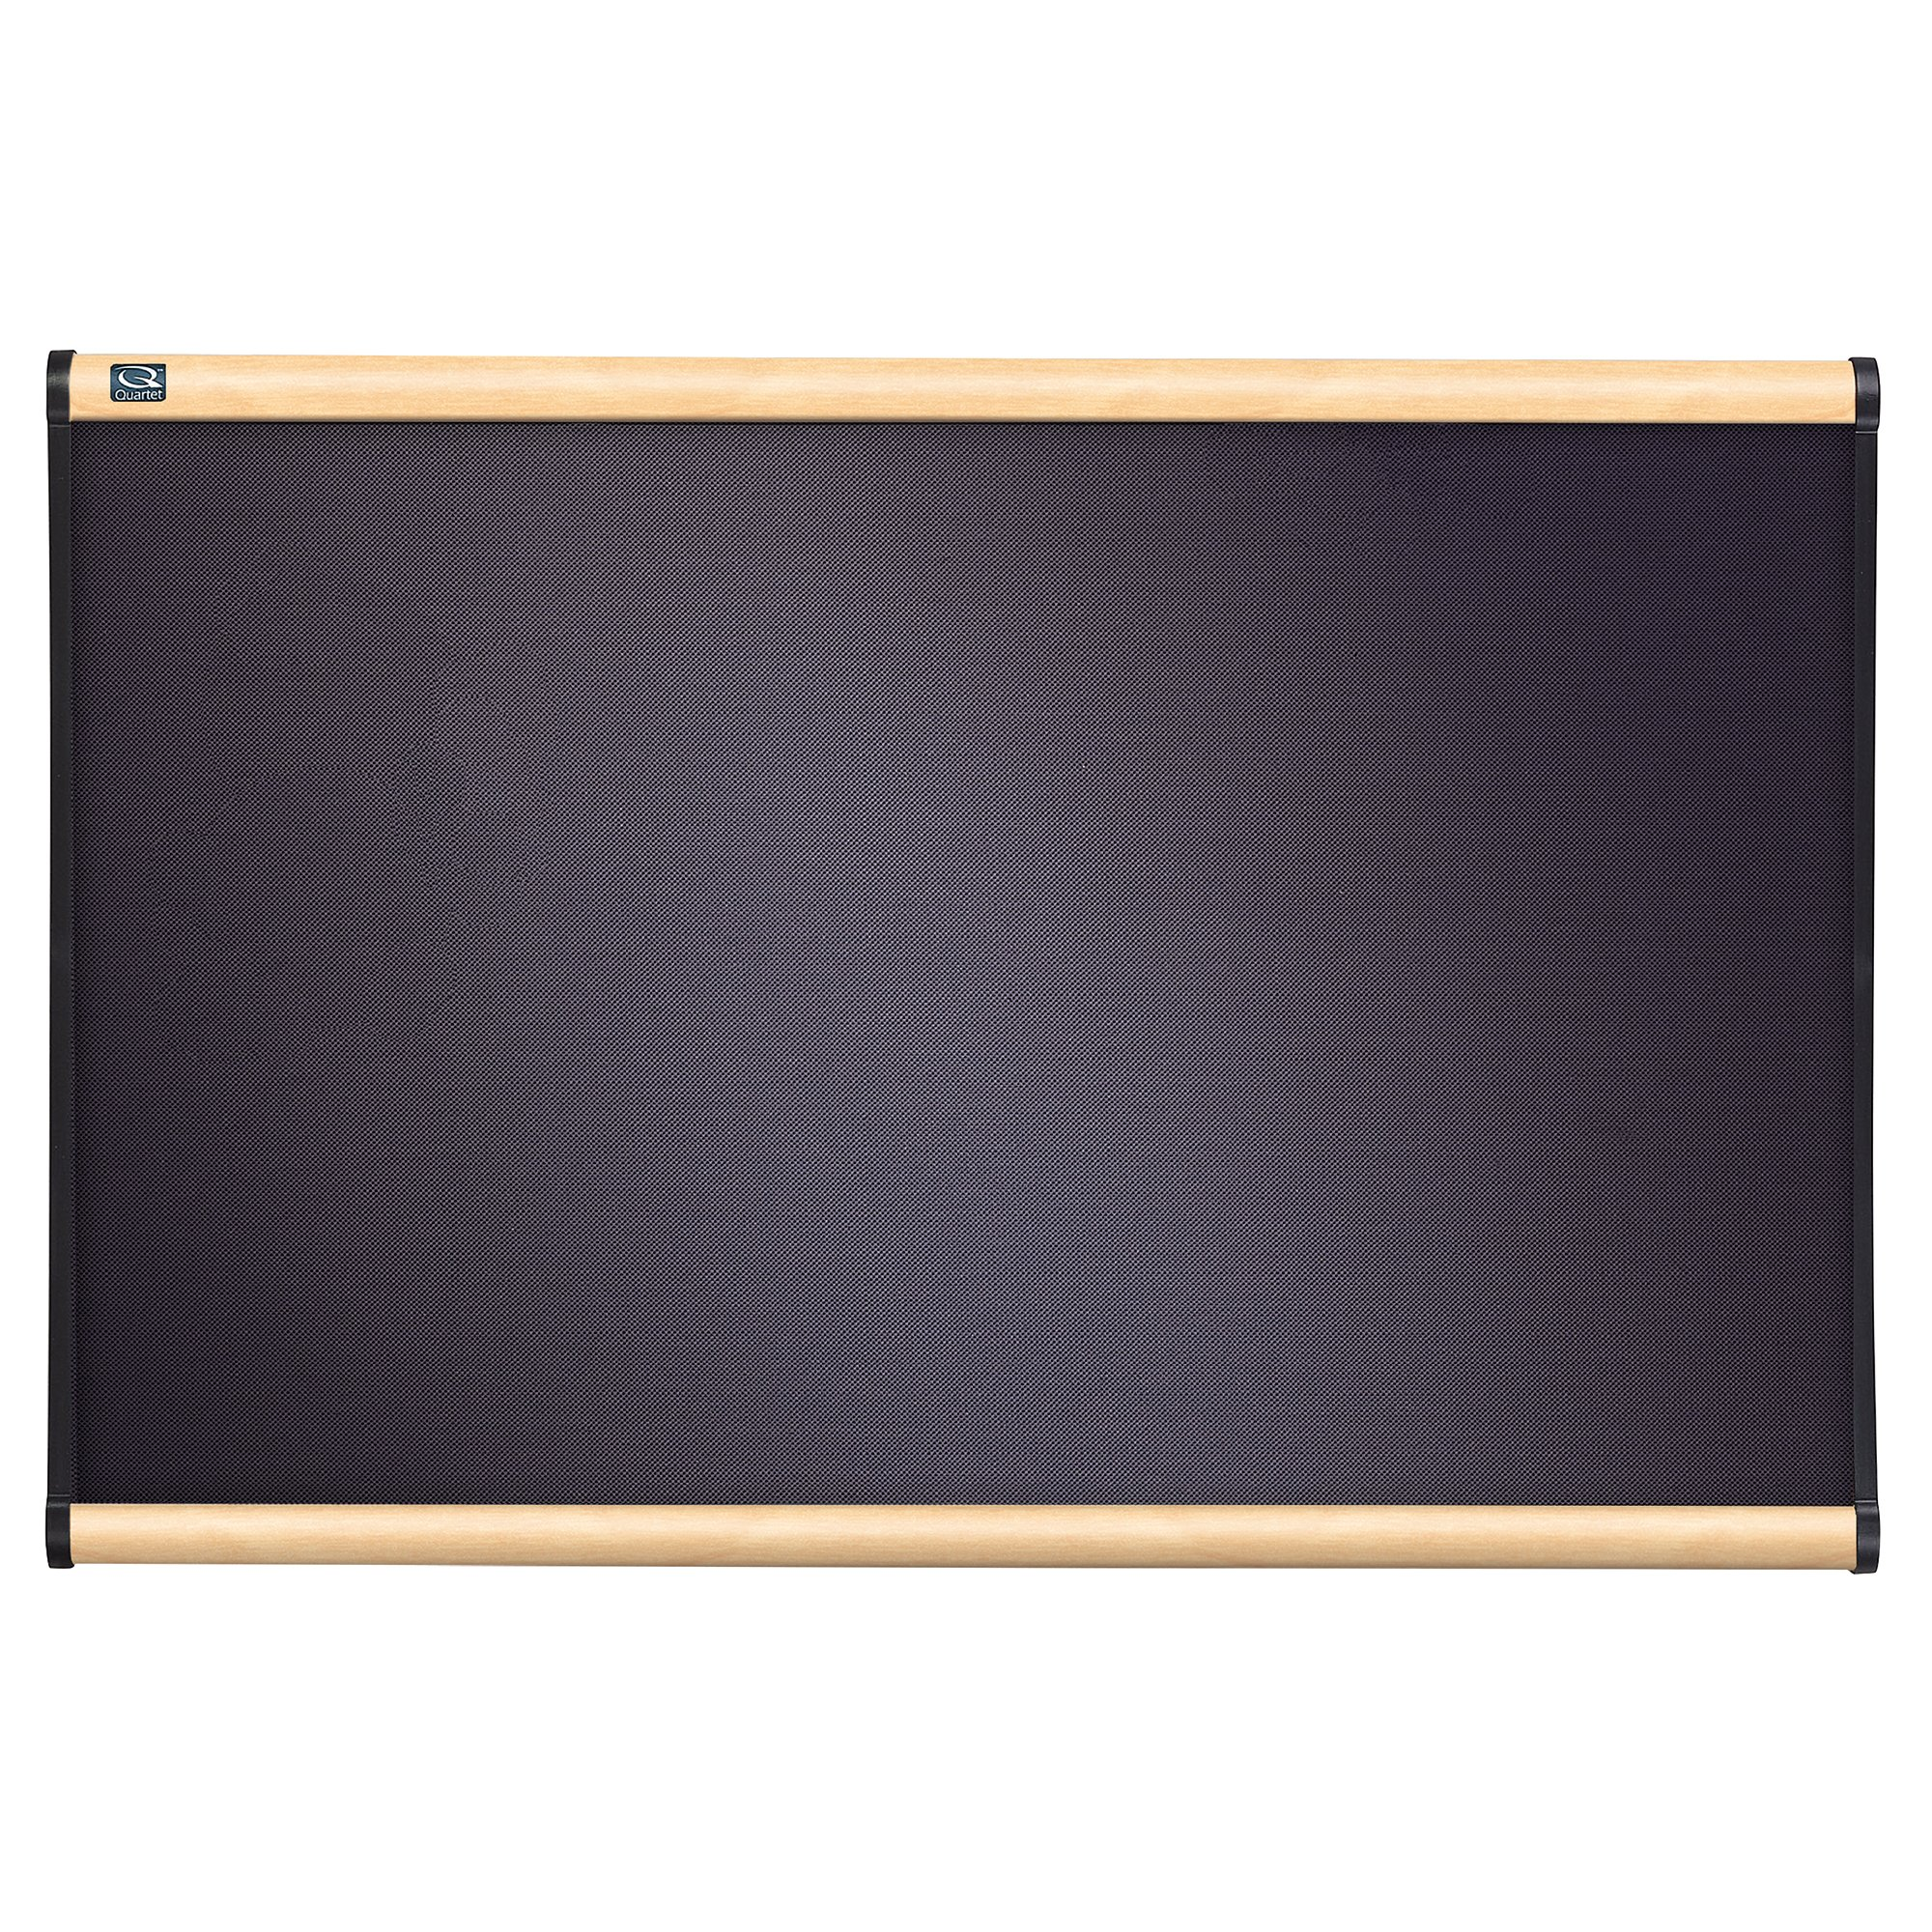 Quartet B444MA Quartet Prestige Bulletin Board, Diamond Mesh Fabric, 48 x 36, GY/Maple Frame